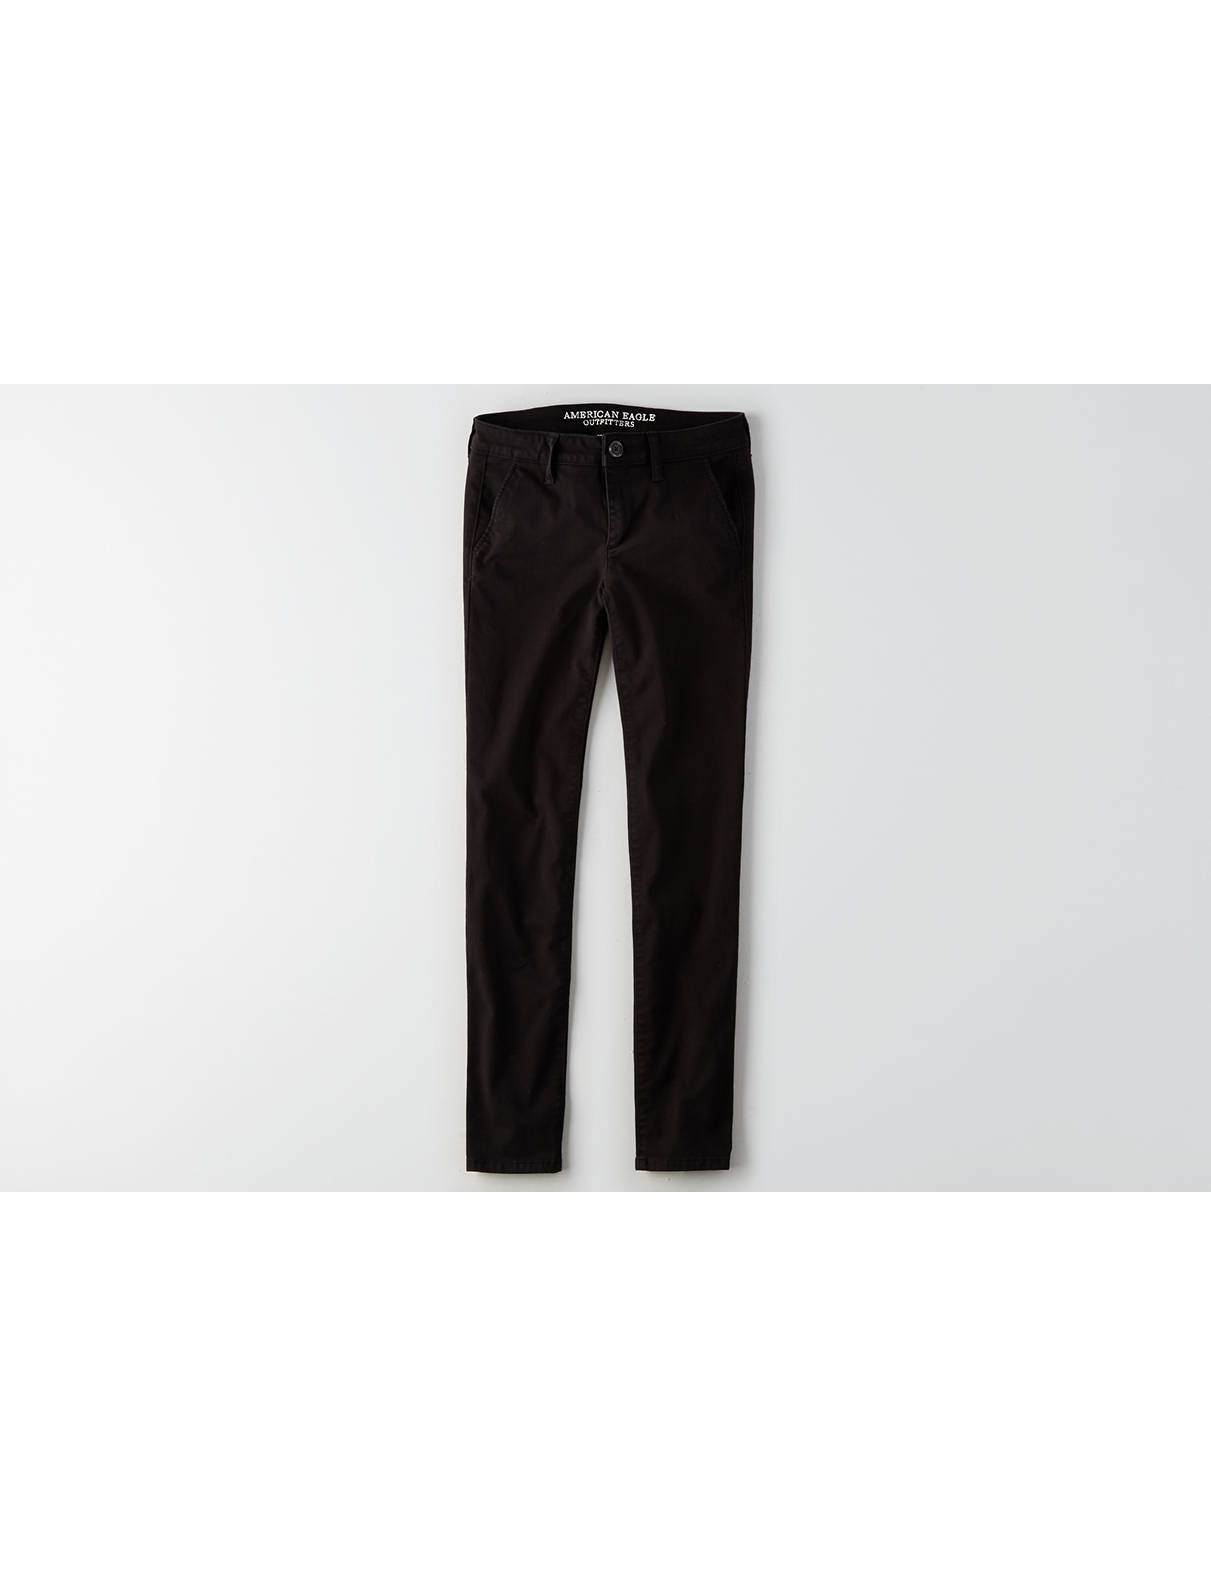 Pants for Women | American Eagle Outfitters